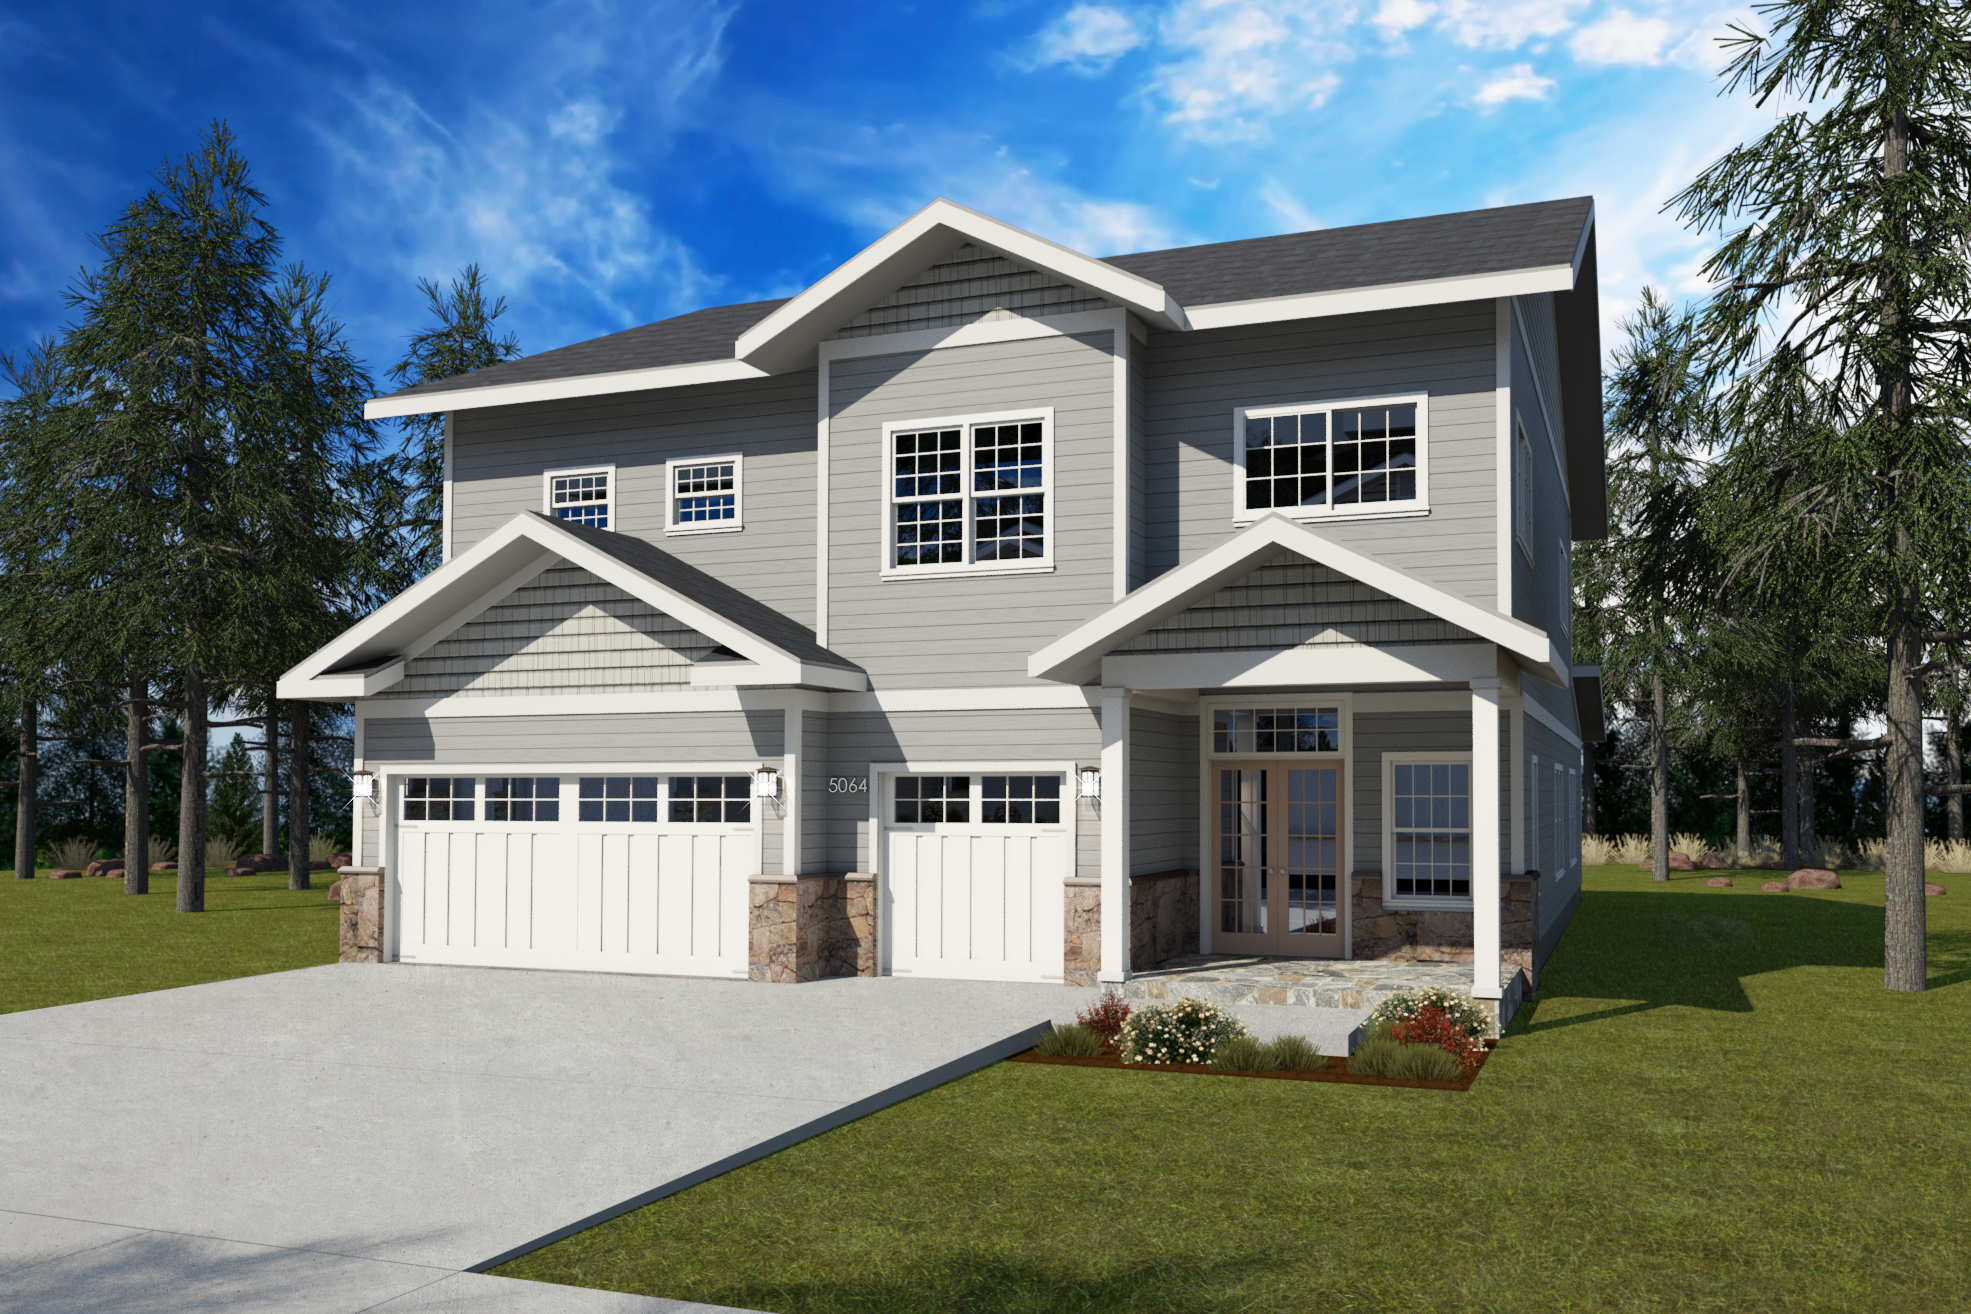 Available New Construction - Mountain Town Homes brings mountain modern to you! Come see our beautiful homes that are currently under construction.